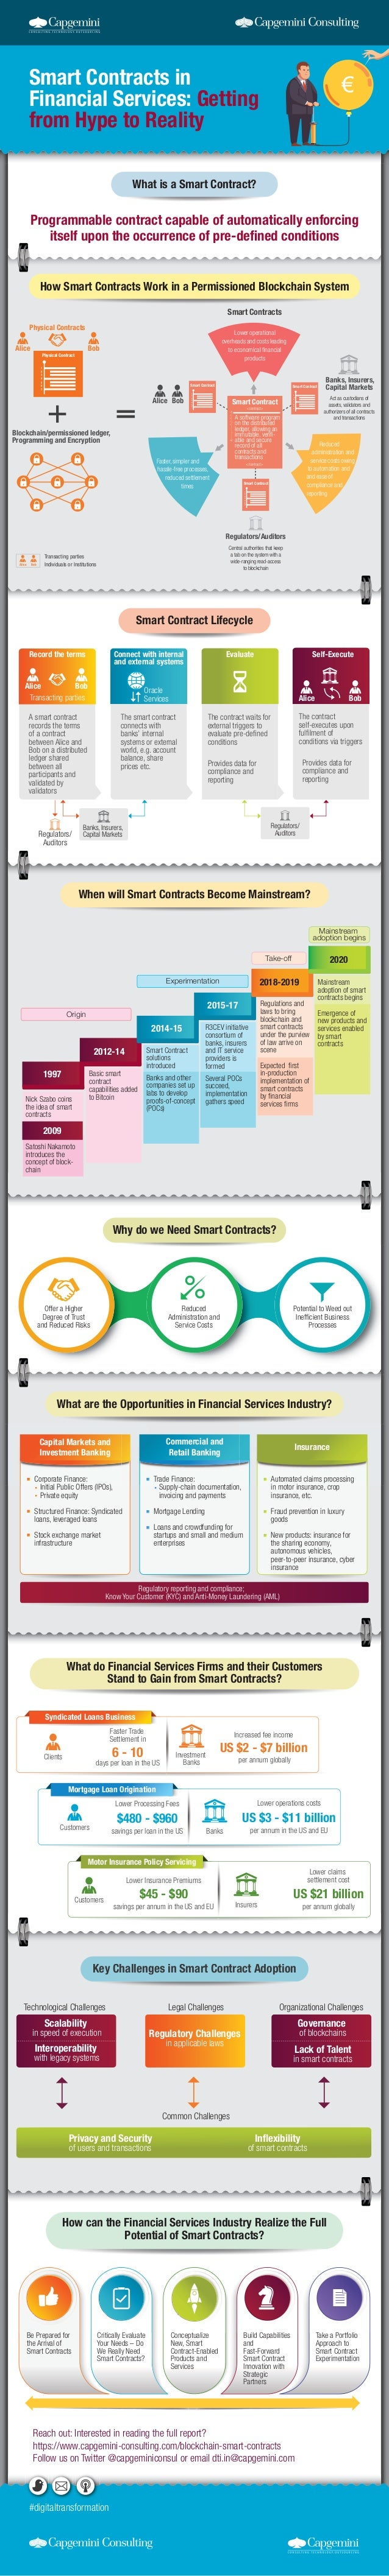 Smart Contract Lifecycle When will Smart Contracts Become Mainstream? What are the Opportunities in Financial Services Ind...